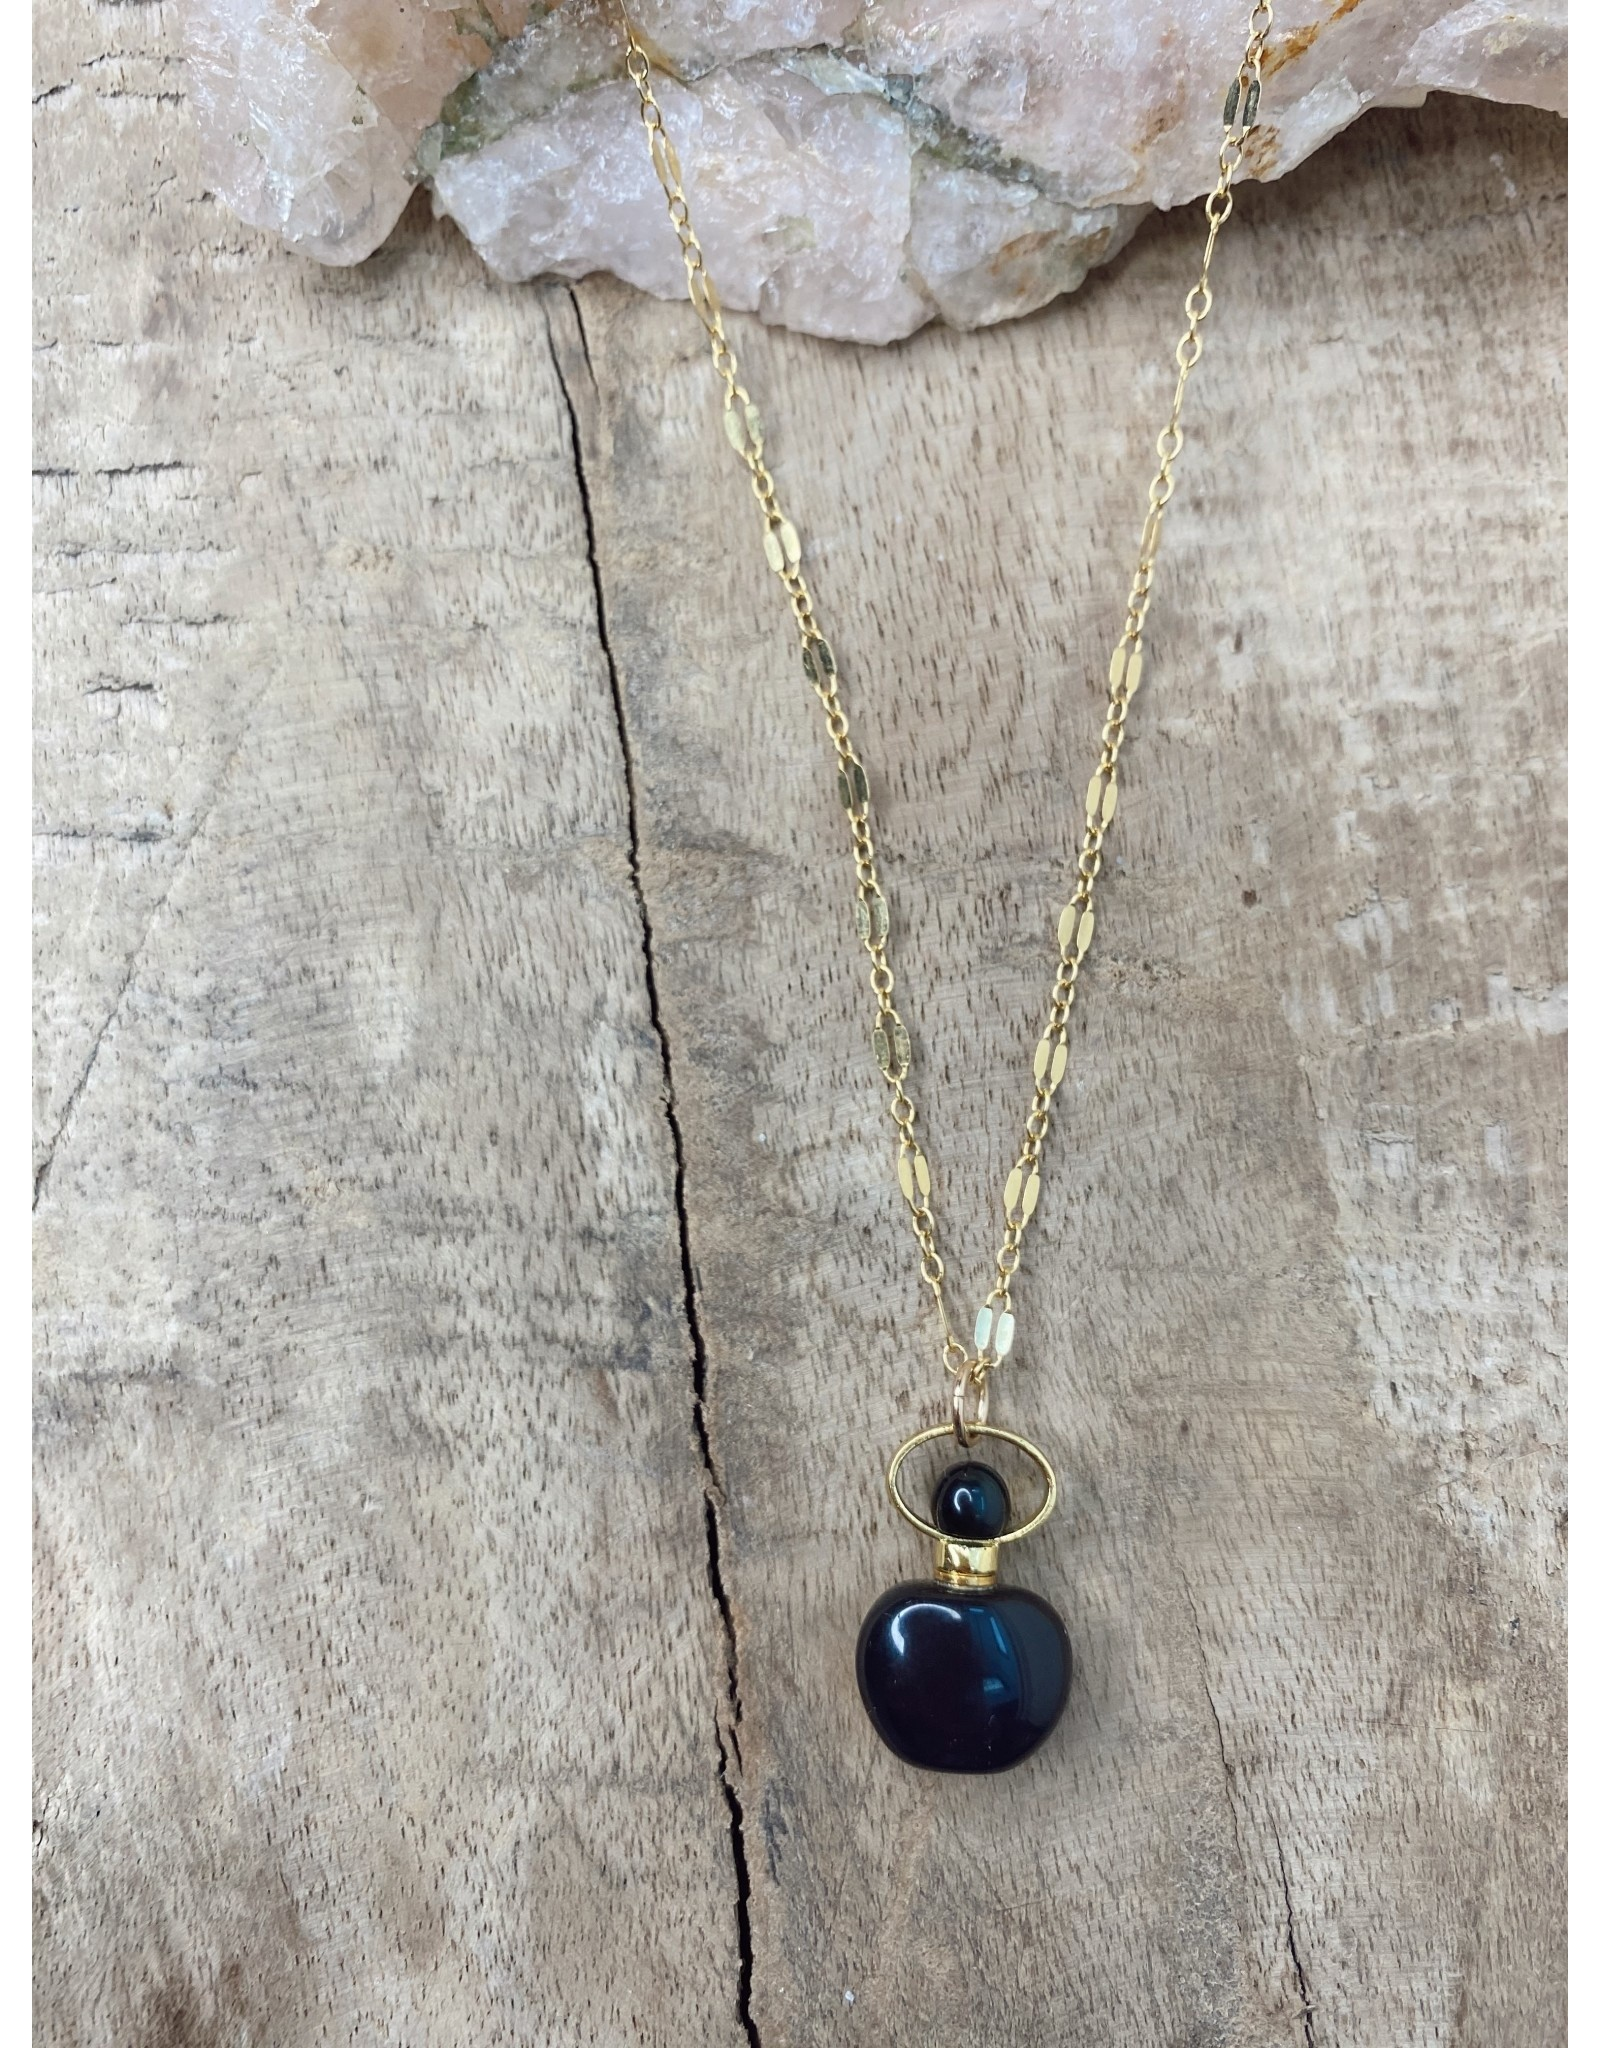 Helen Wang Essential Oil Diffusing Necklace